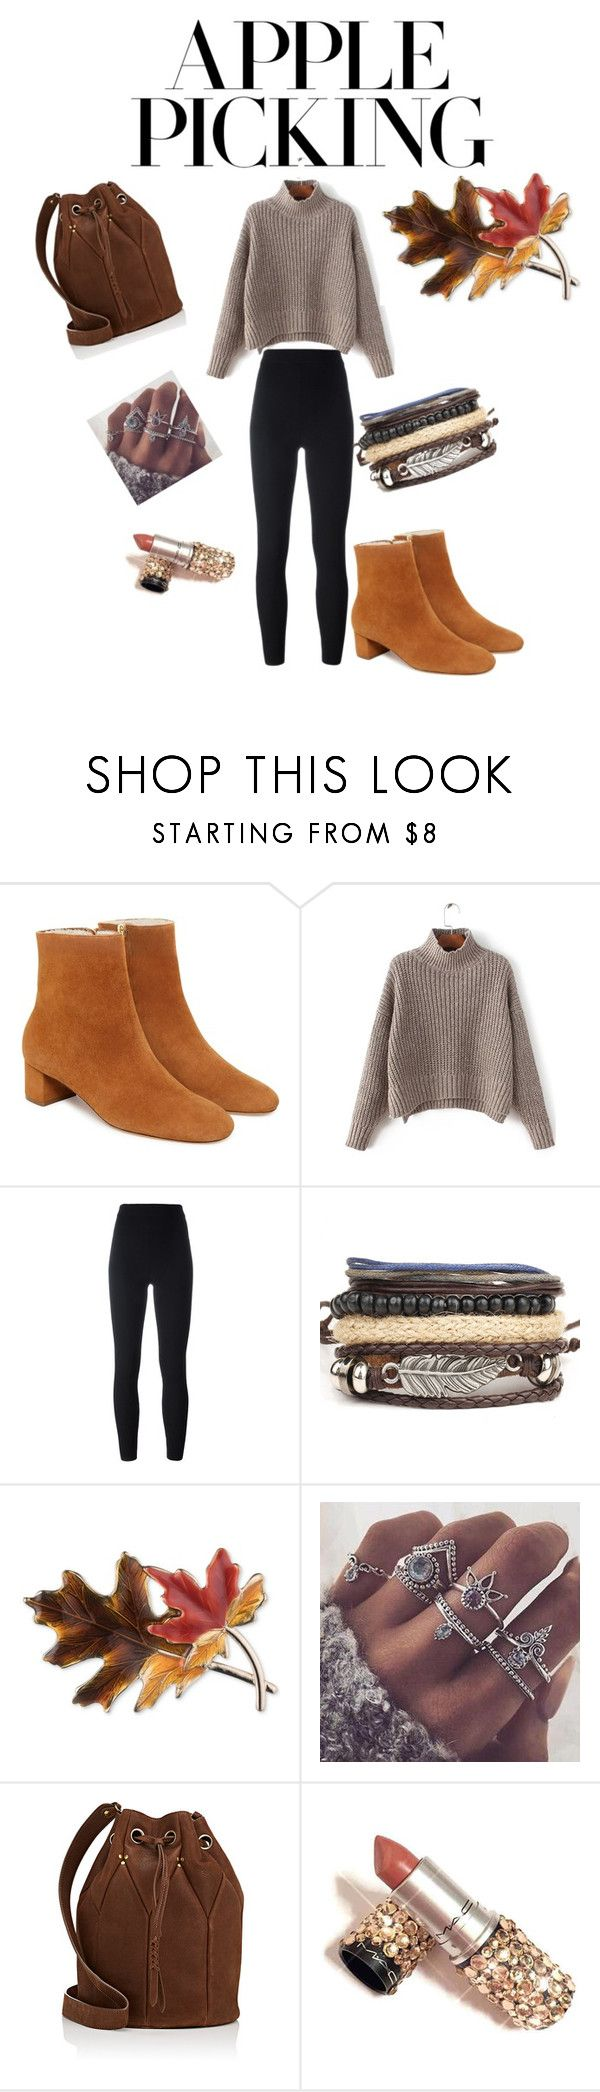 """""""warm and cozy apple picking"""" by aimer-la-mode ❤ liked on Polyvore featuring Yeezy by Kanye West, Anne Klein and Jérôme Dreyfuss"""